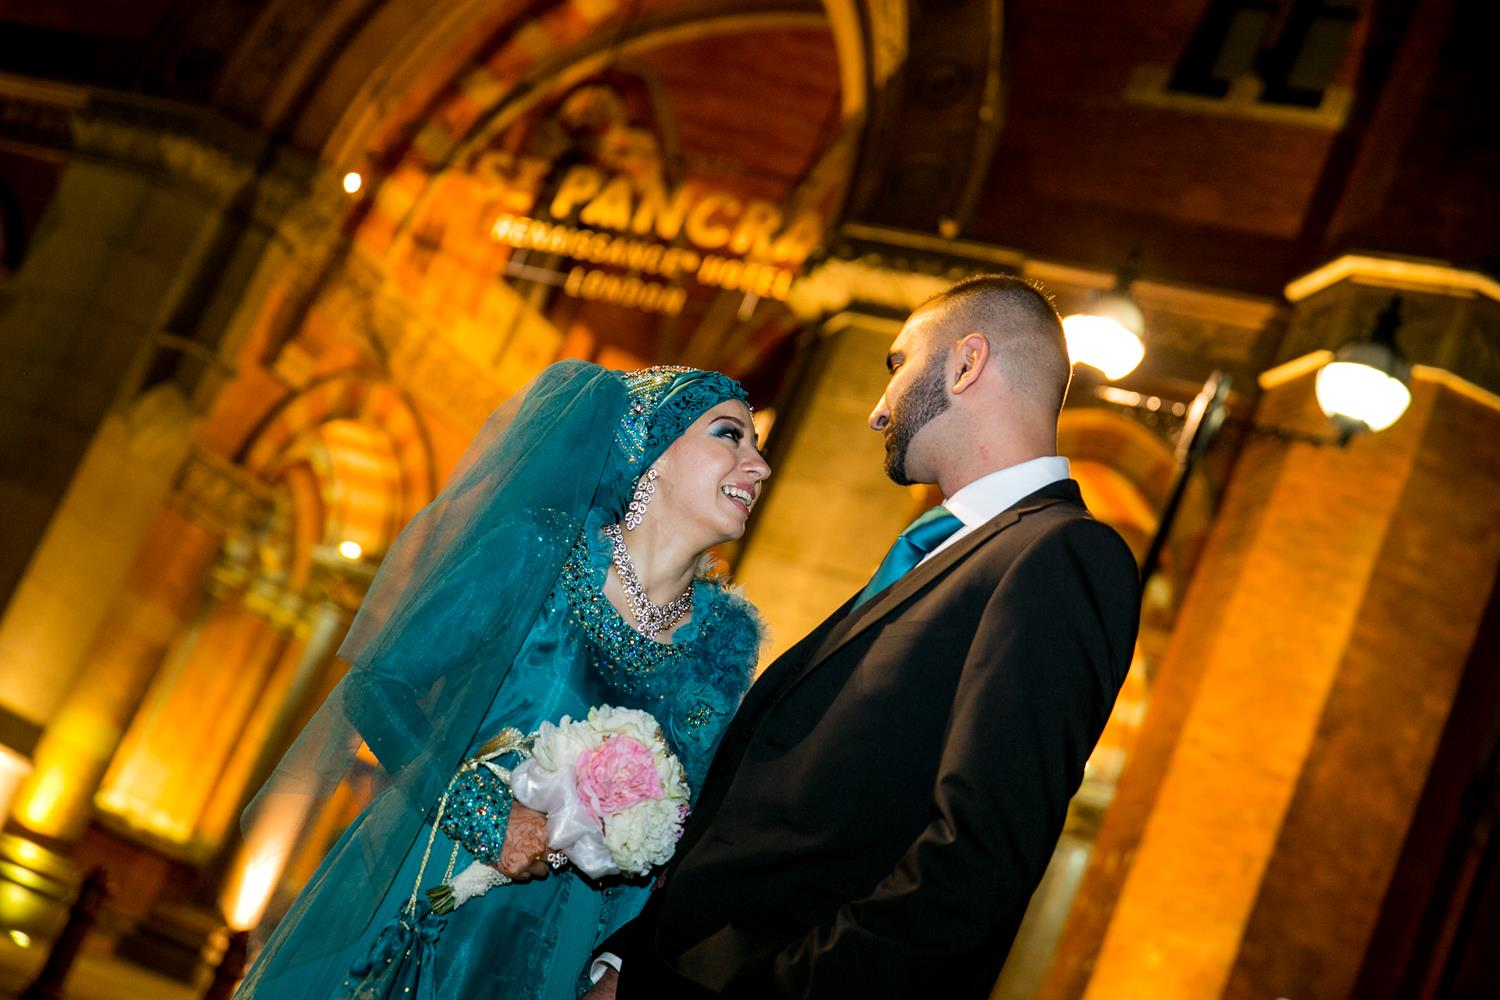 Muslim Wedding Photography of couple at their Indian Wedding by MAKSAM Photographer outside London's Renaissance Hotel